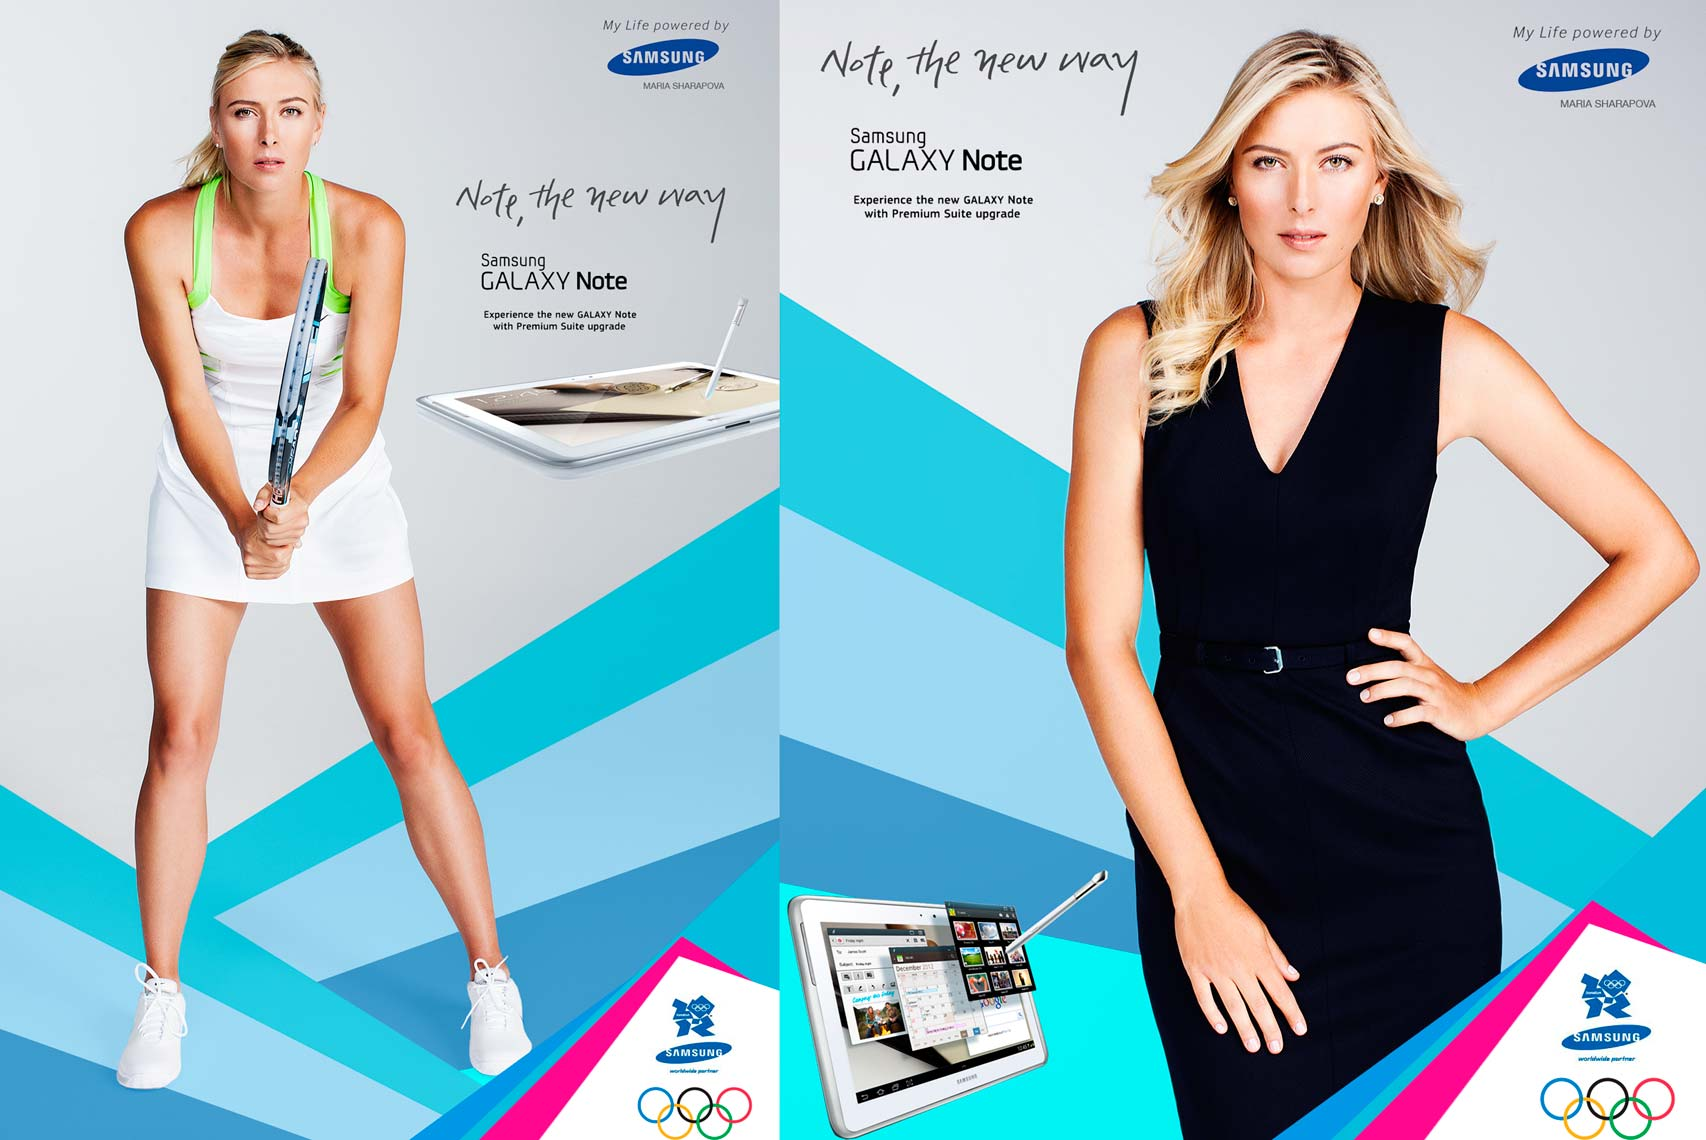 Chris-Hunt-Photography-Advertising-Maria-Sharapova-Samsung-432